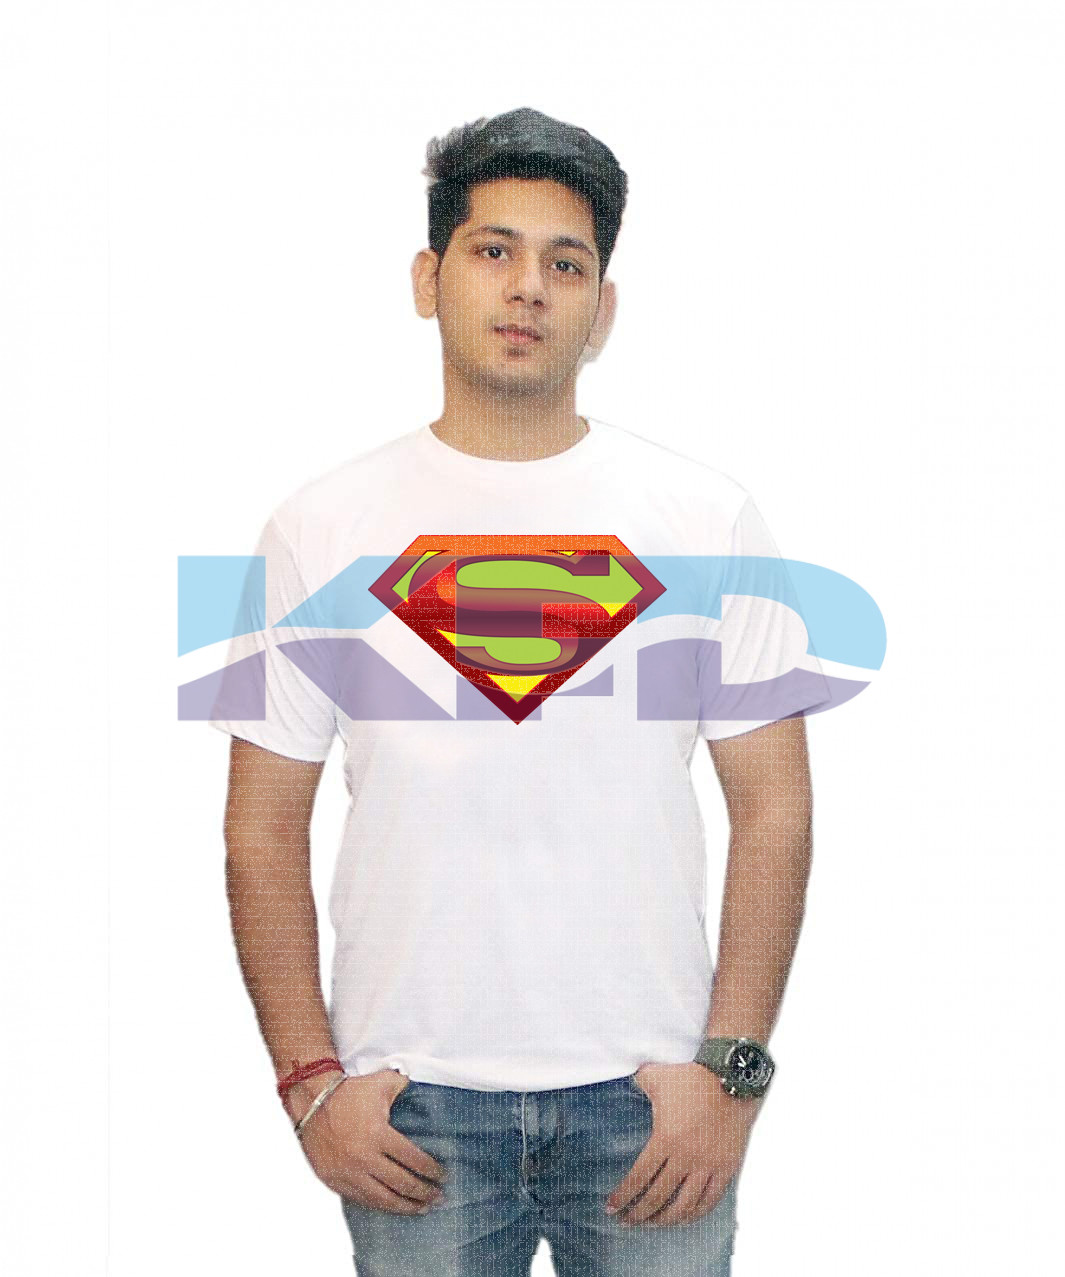 Super-T-shirt fancy dress for kids,Western Costume for Annual function/Theme Party/Competition/Stage Shows/Birthday Party Dress